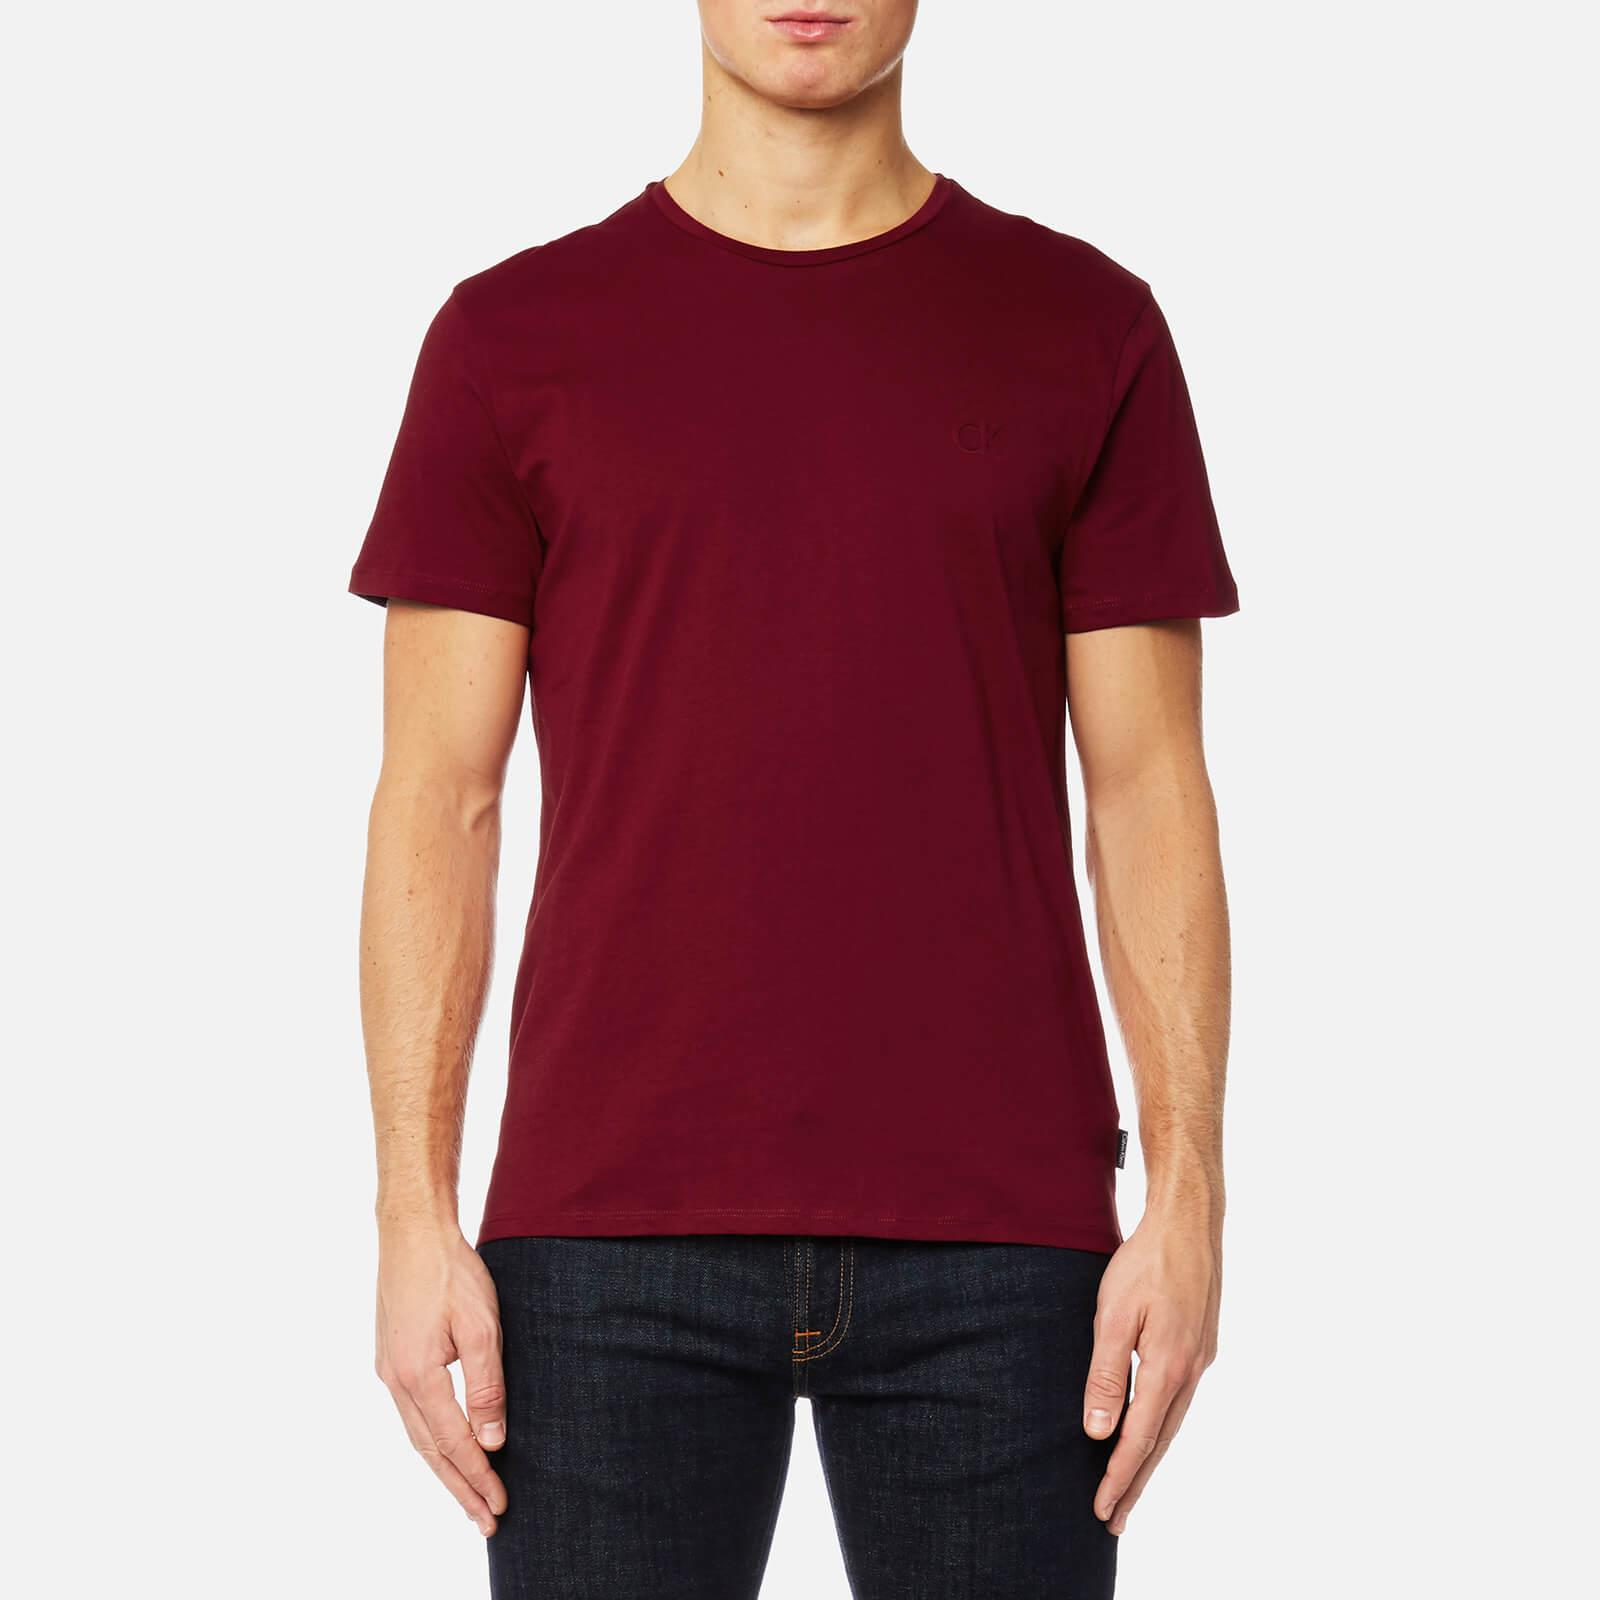 b03407a126adf Lyst - Calvin Klein Jari Embossed T-shirt in Red for Men